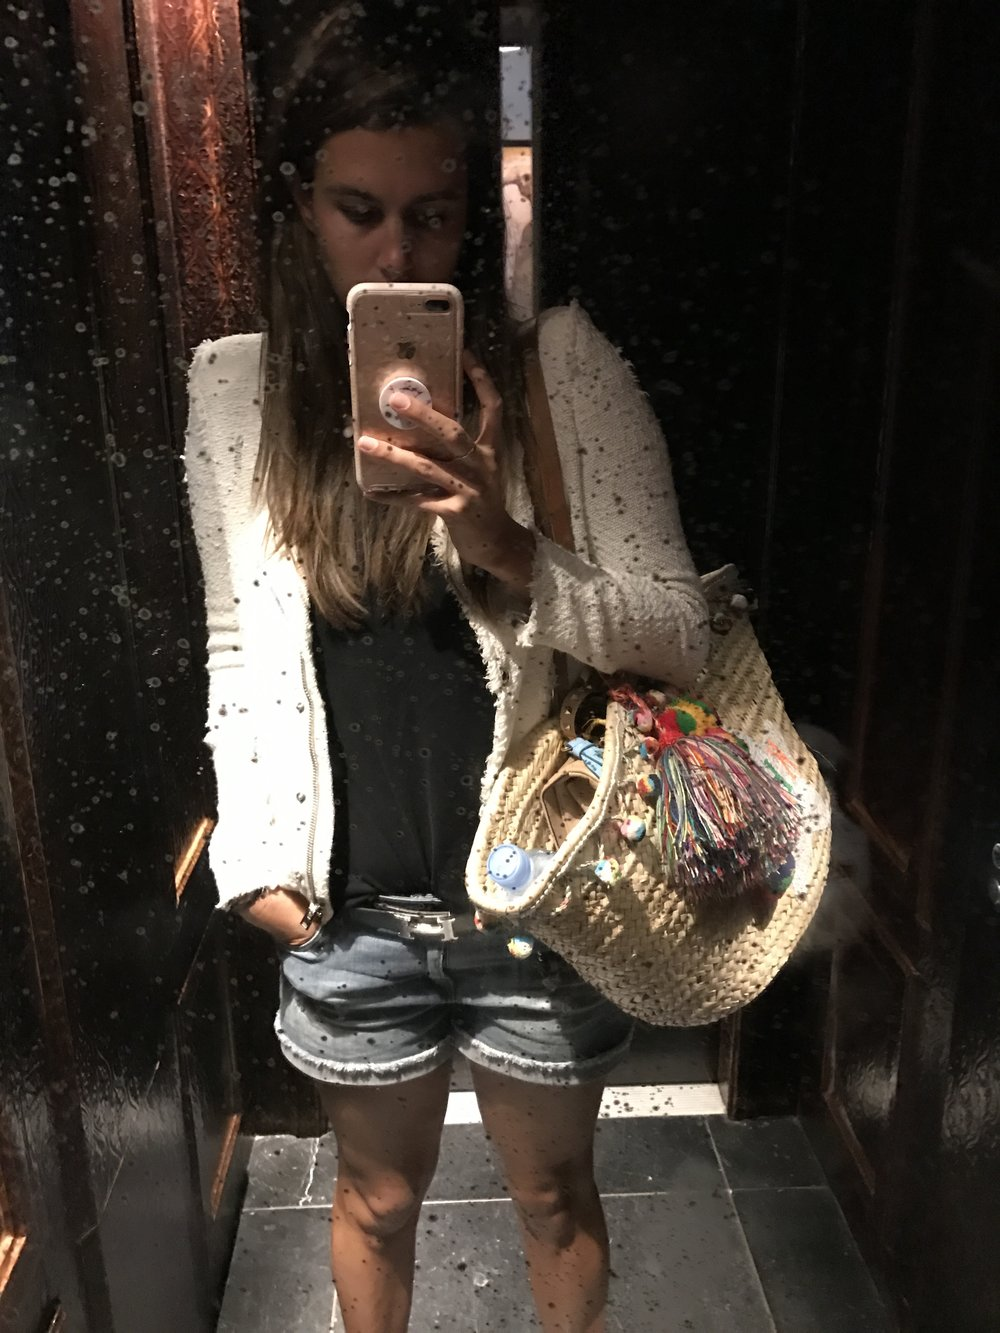 Goodbye- For Now - A shameless elevator selfie (which I wish you could see better- the leather lined walls and antique details made it reminiscent of a jewel box).